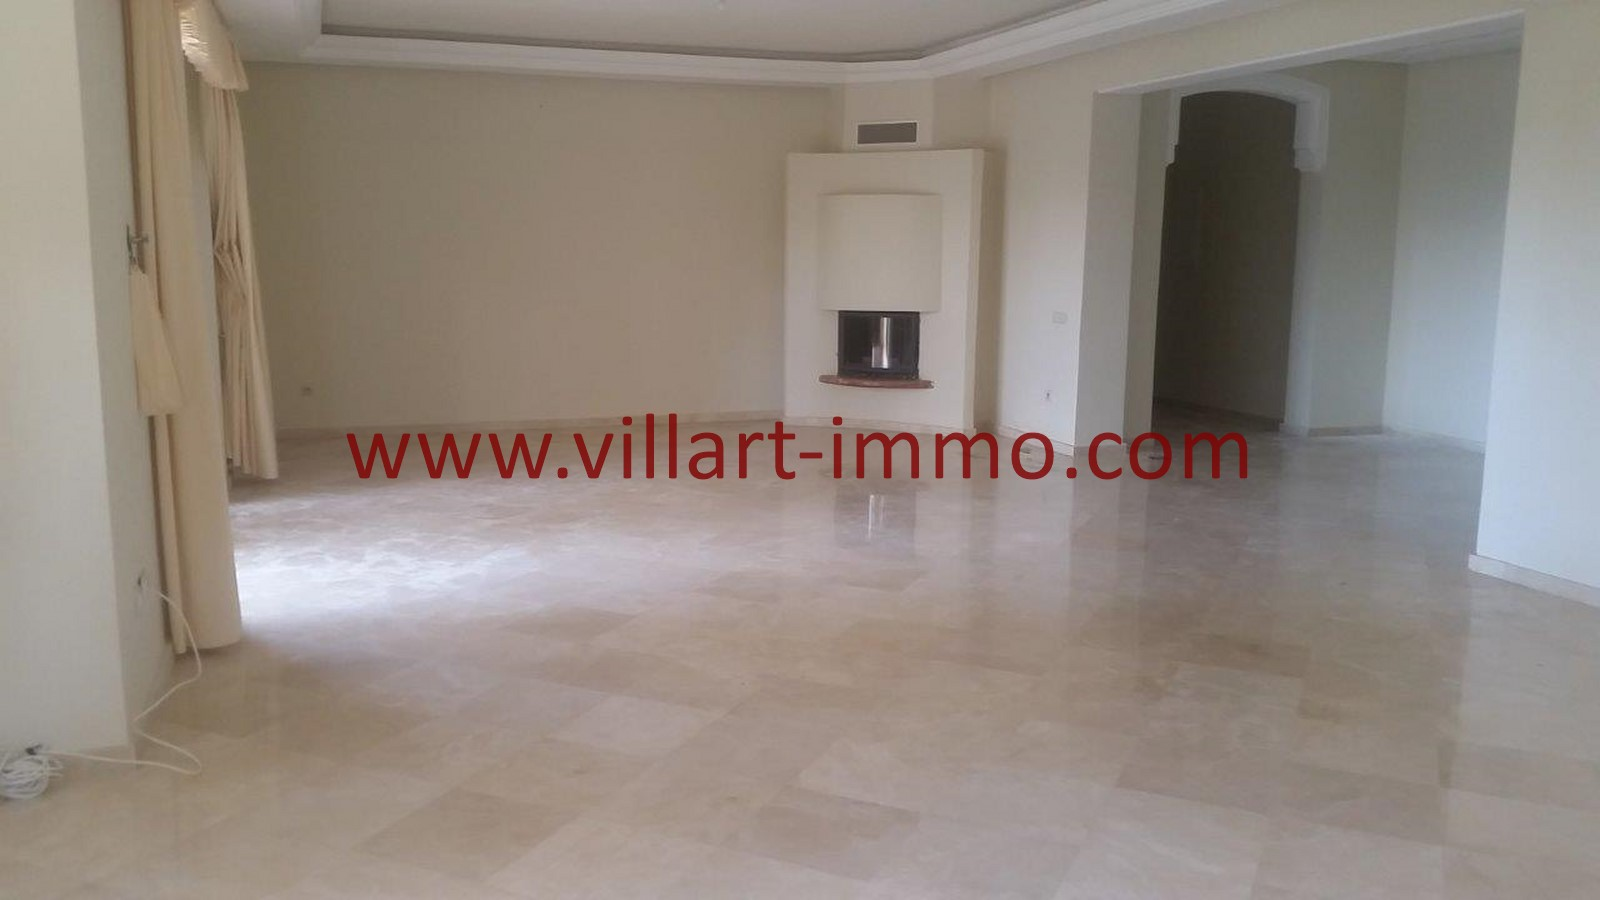 6-location-appartement-jbel-kebir-tanger-salon-2-l974-villart-immo